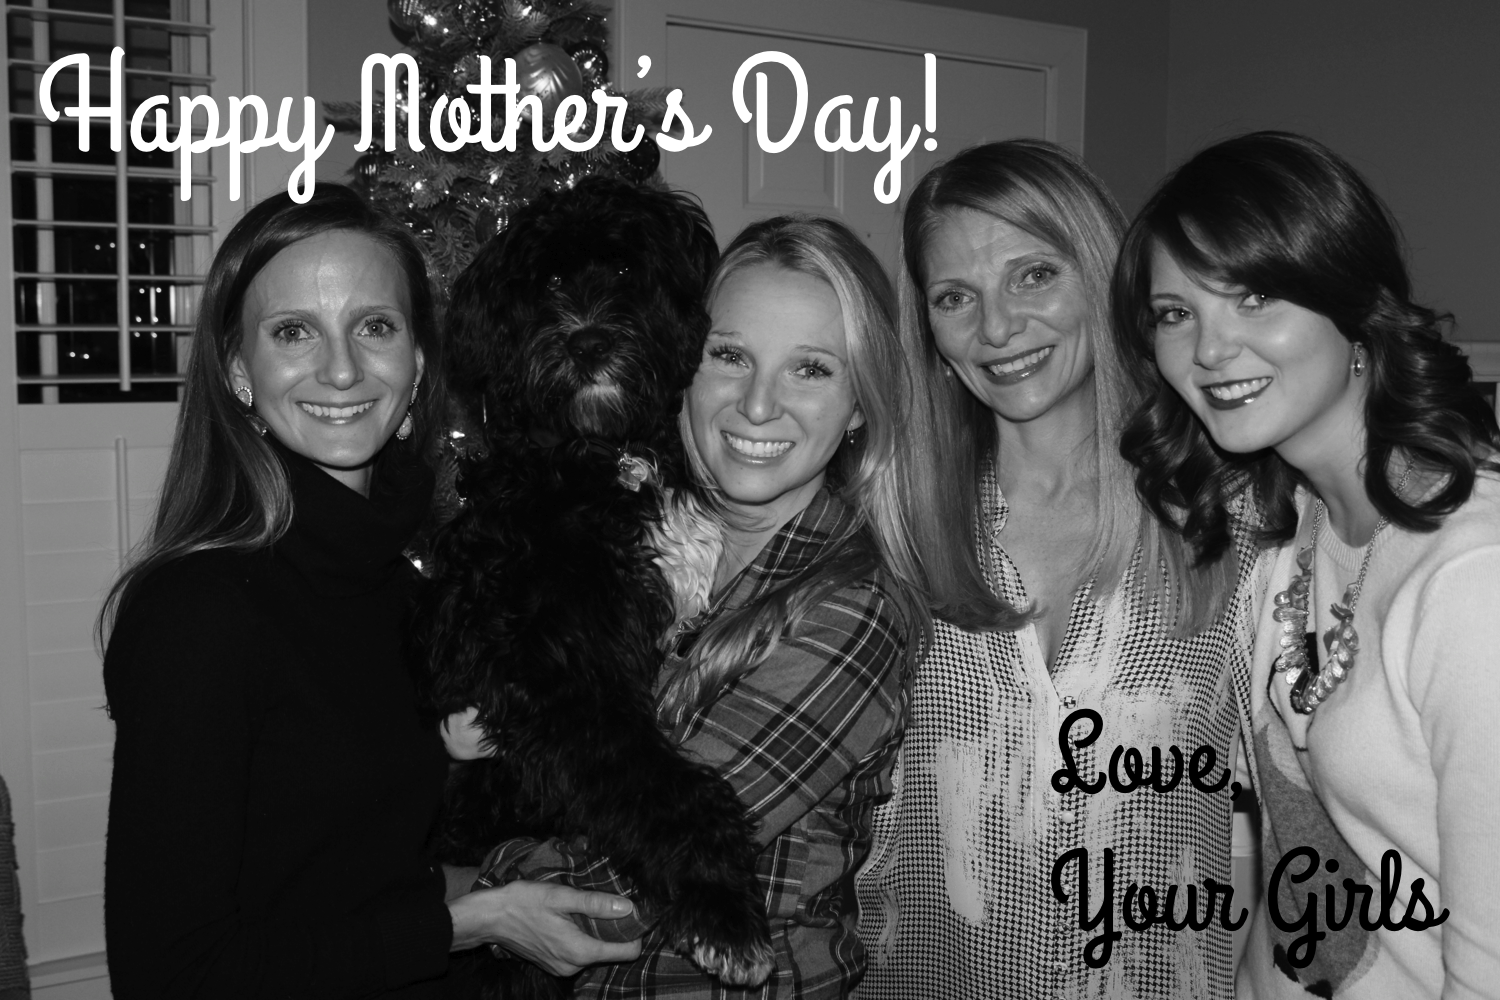 HappyMother'sDayfromyourgirls